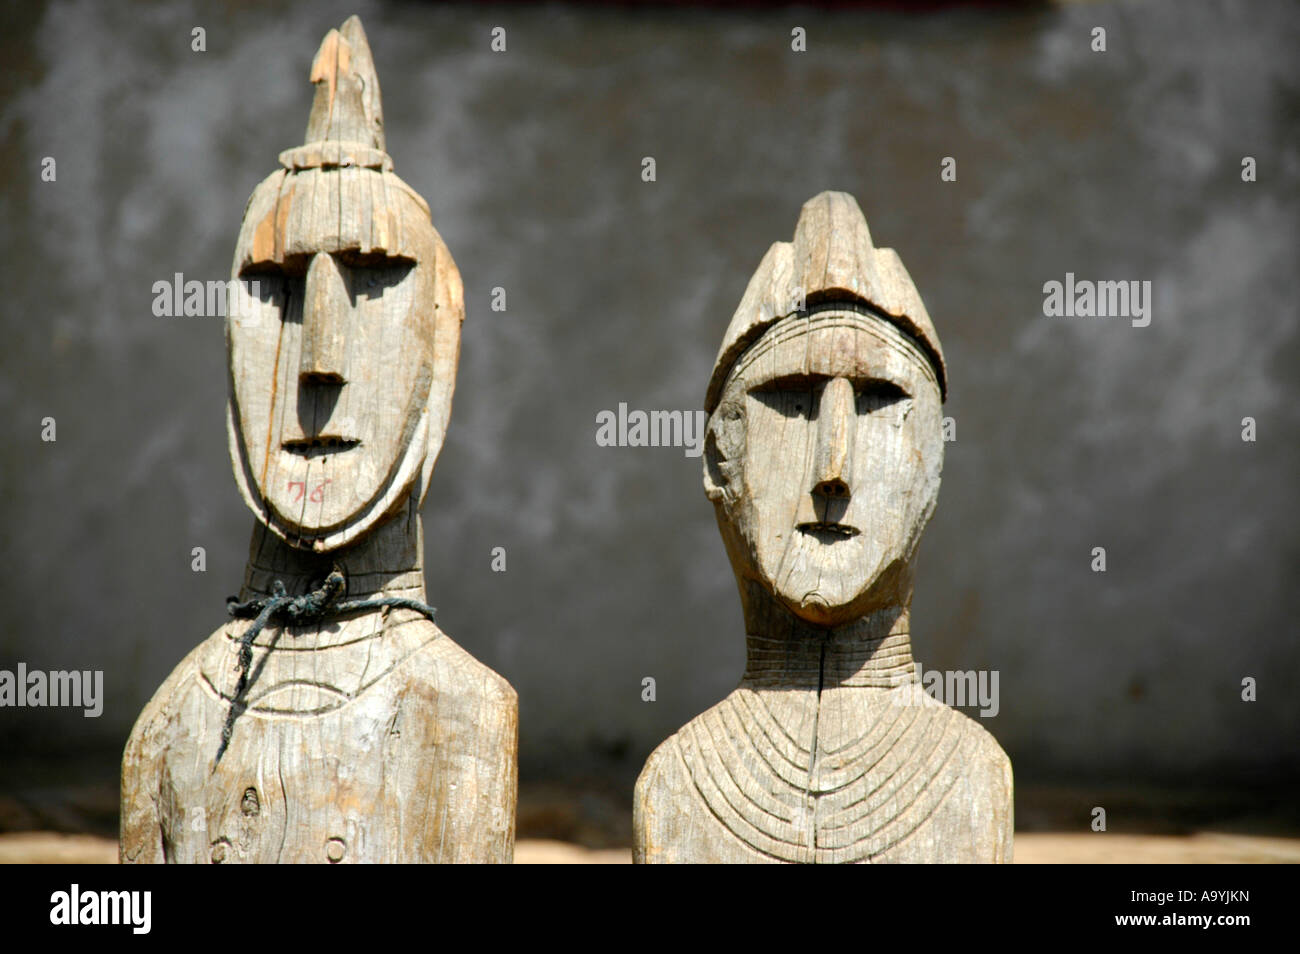 Two heads of ancient wooden totem figures museum Konso Ethiopia Stock Photo